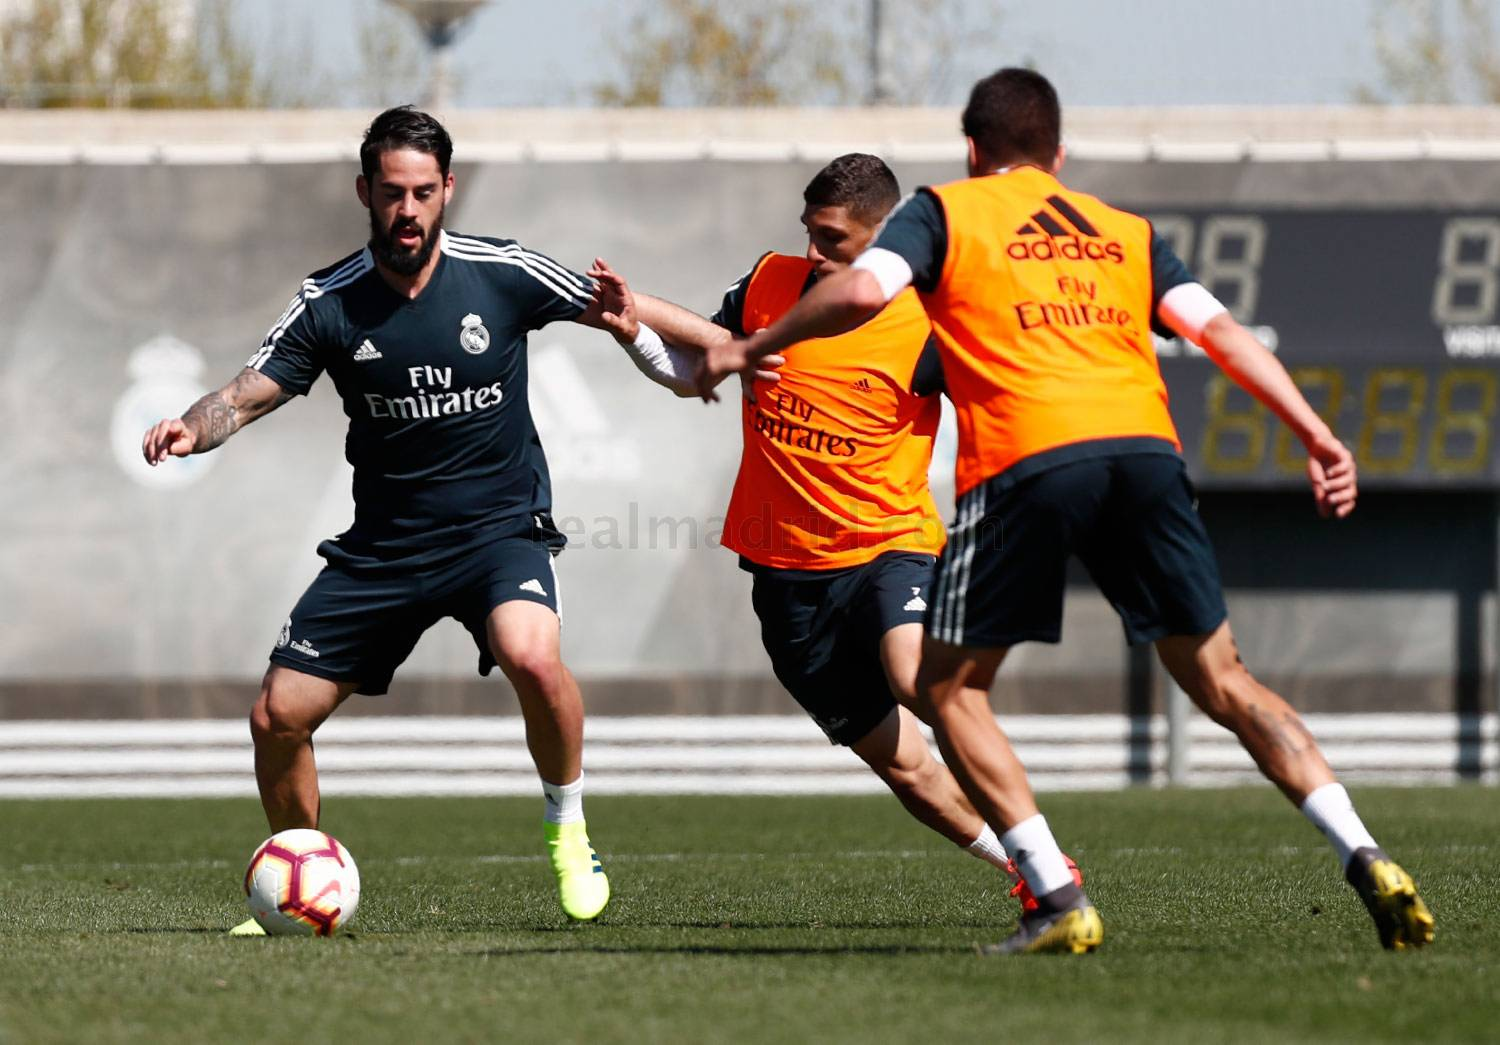 Real Madrid - Entrenamiento del Real Madrid - 21-03-2019